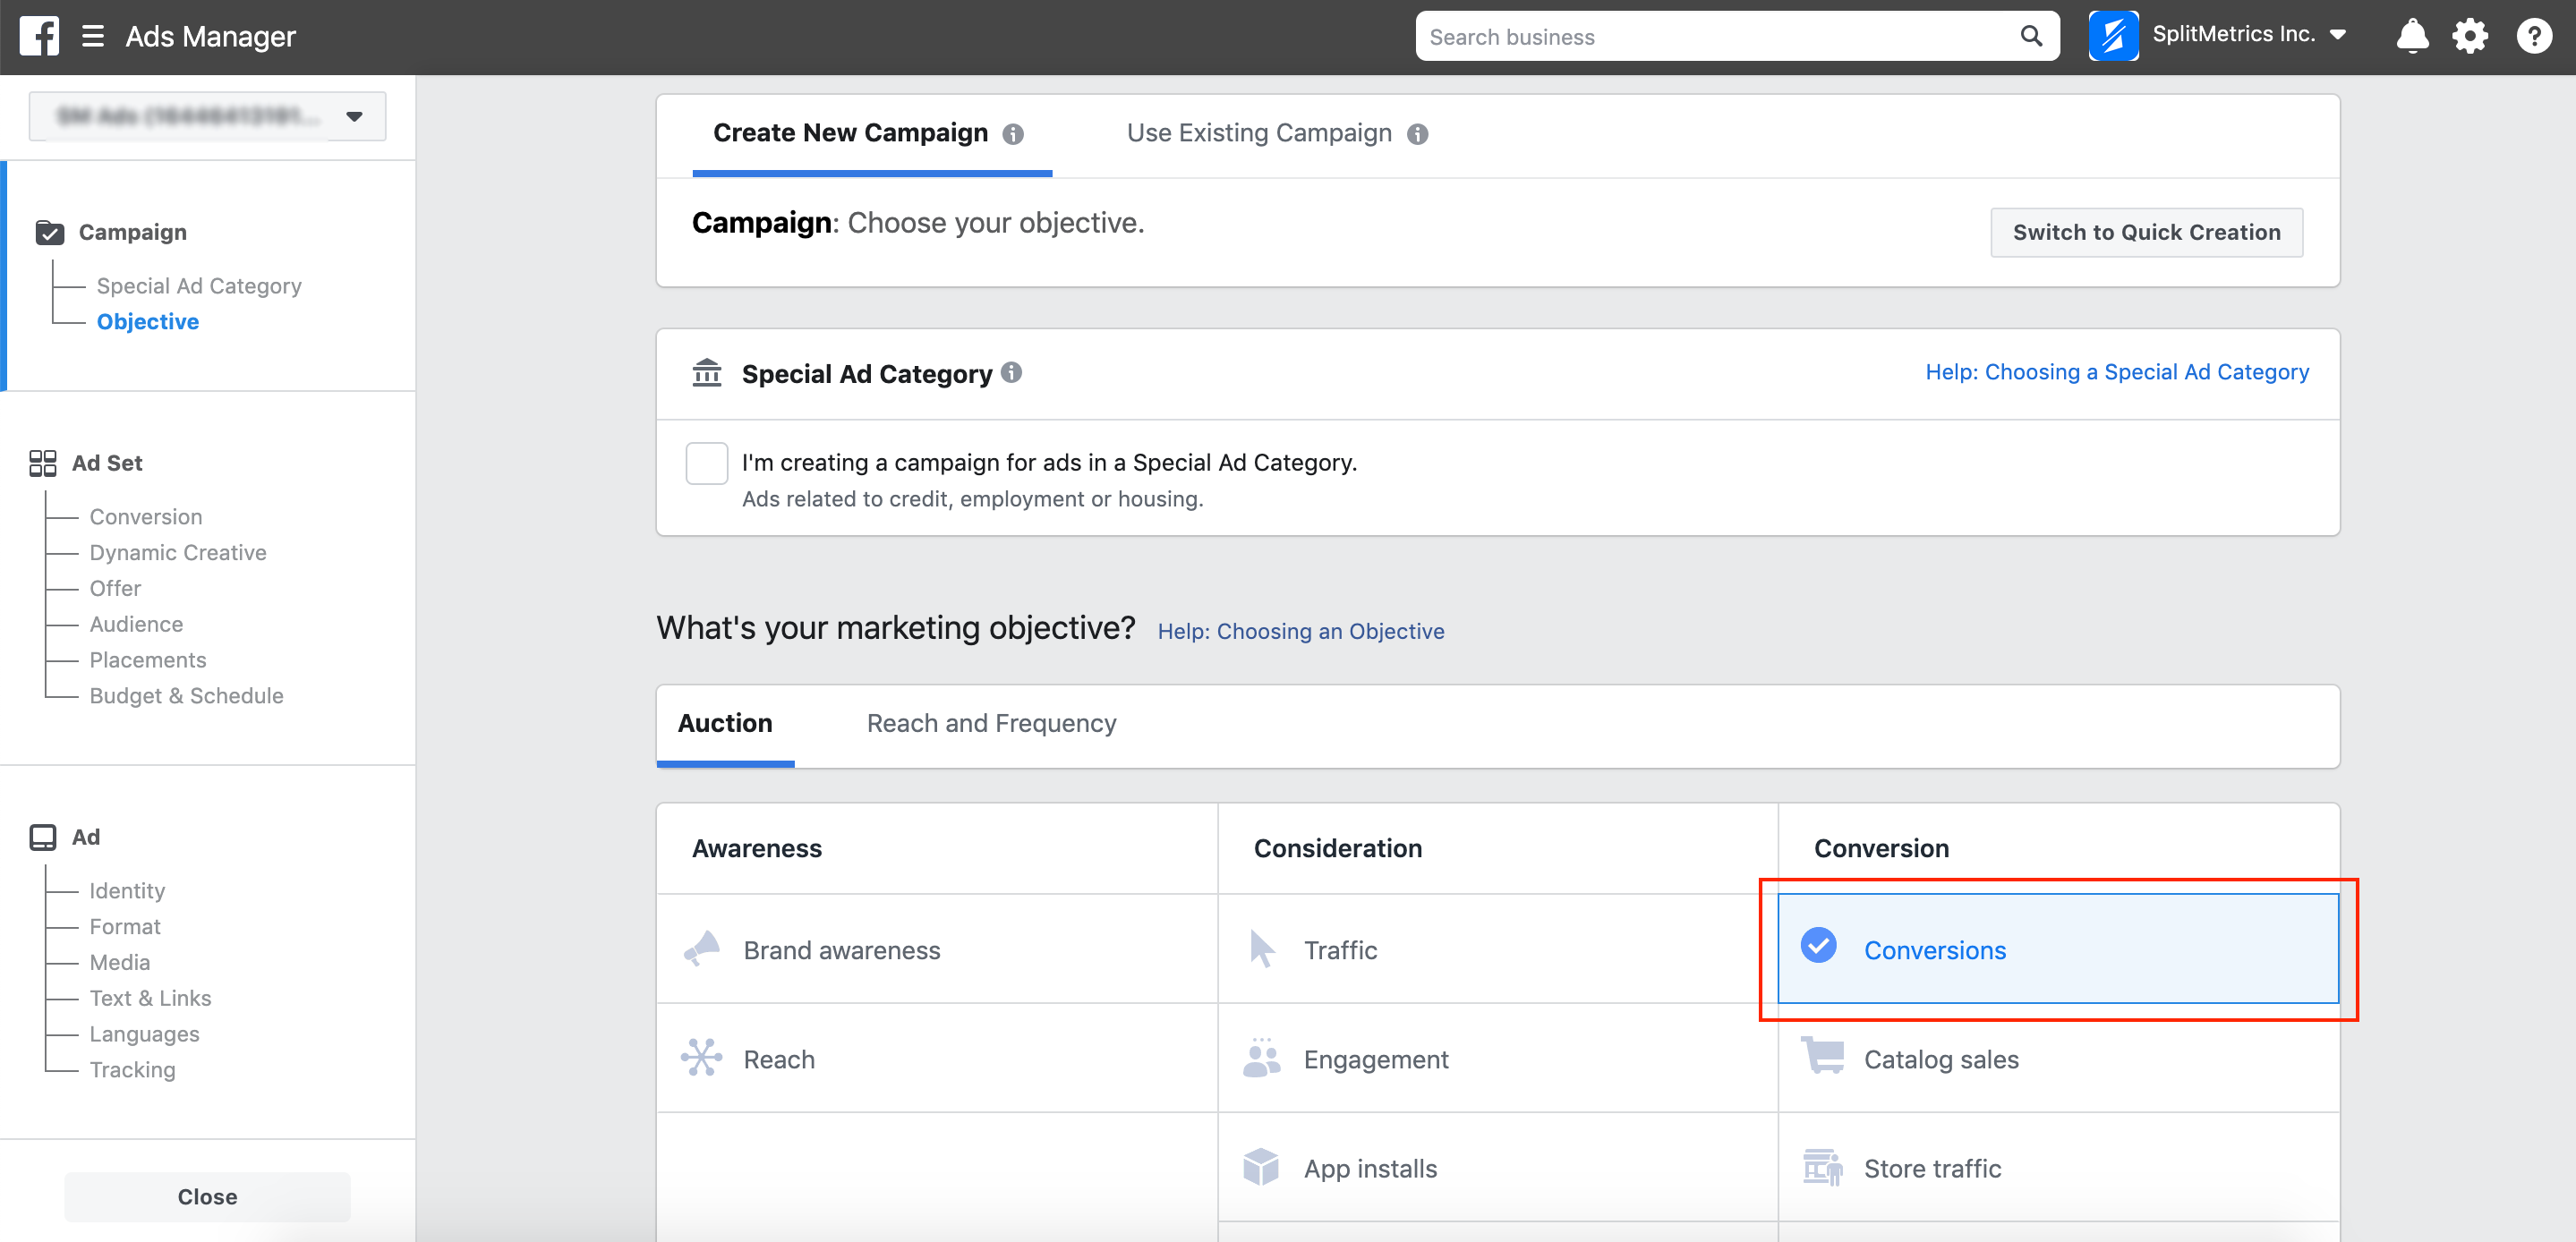 Optimizing Ad Campaigns for SplitMetrics actions